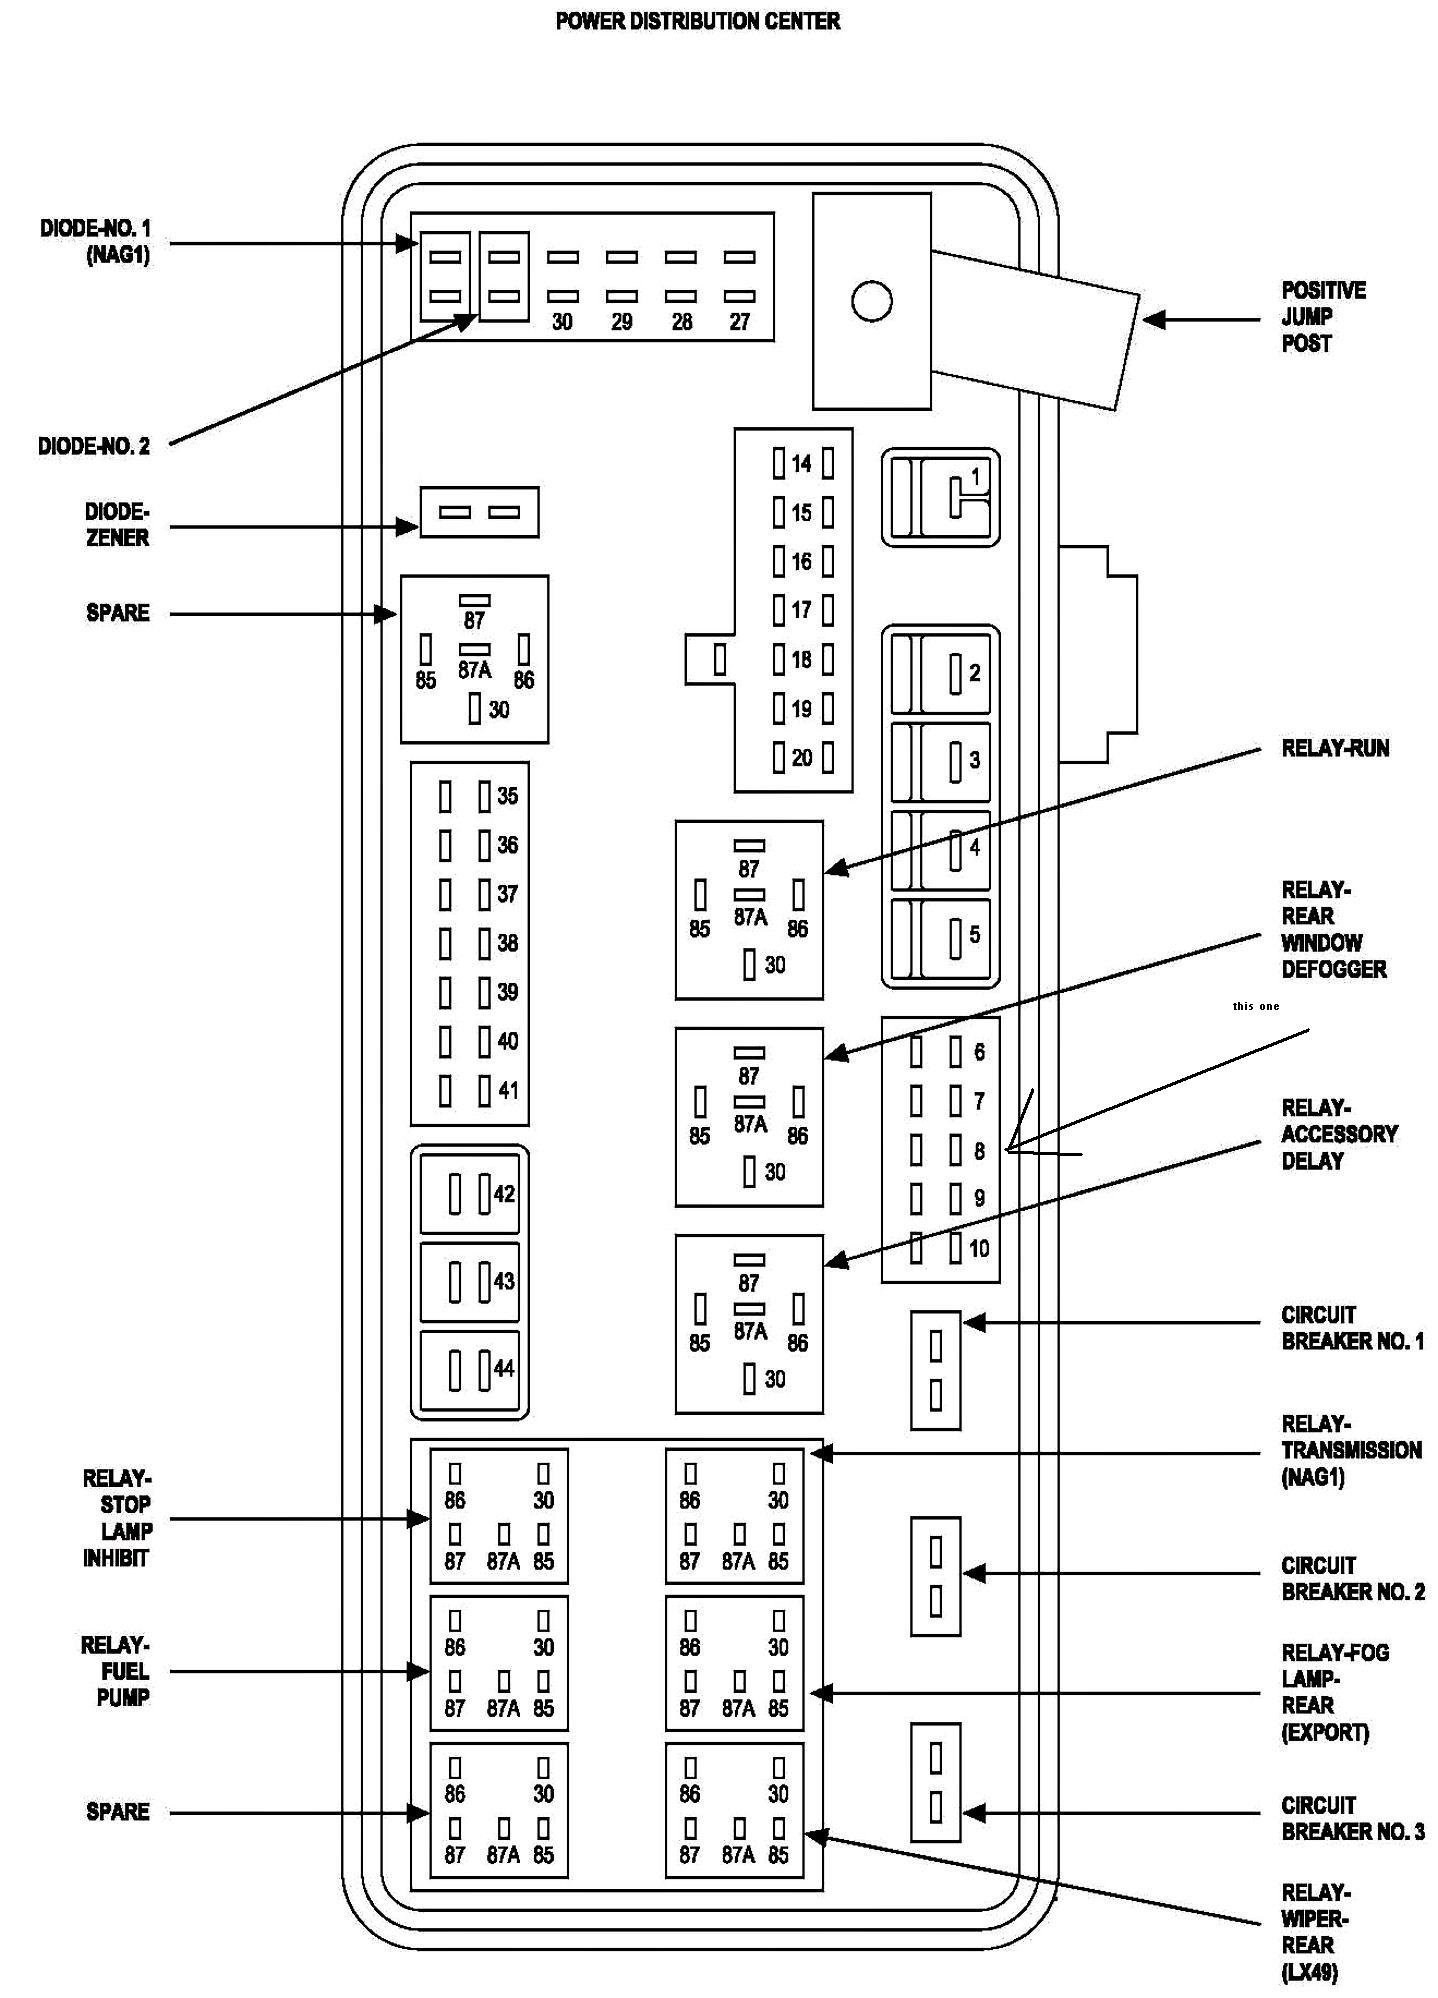 2013 Dodge Ram Fuse Box Diagram Truck • Wiring Diagram For